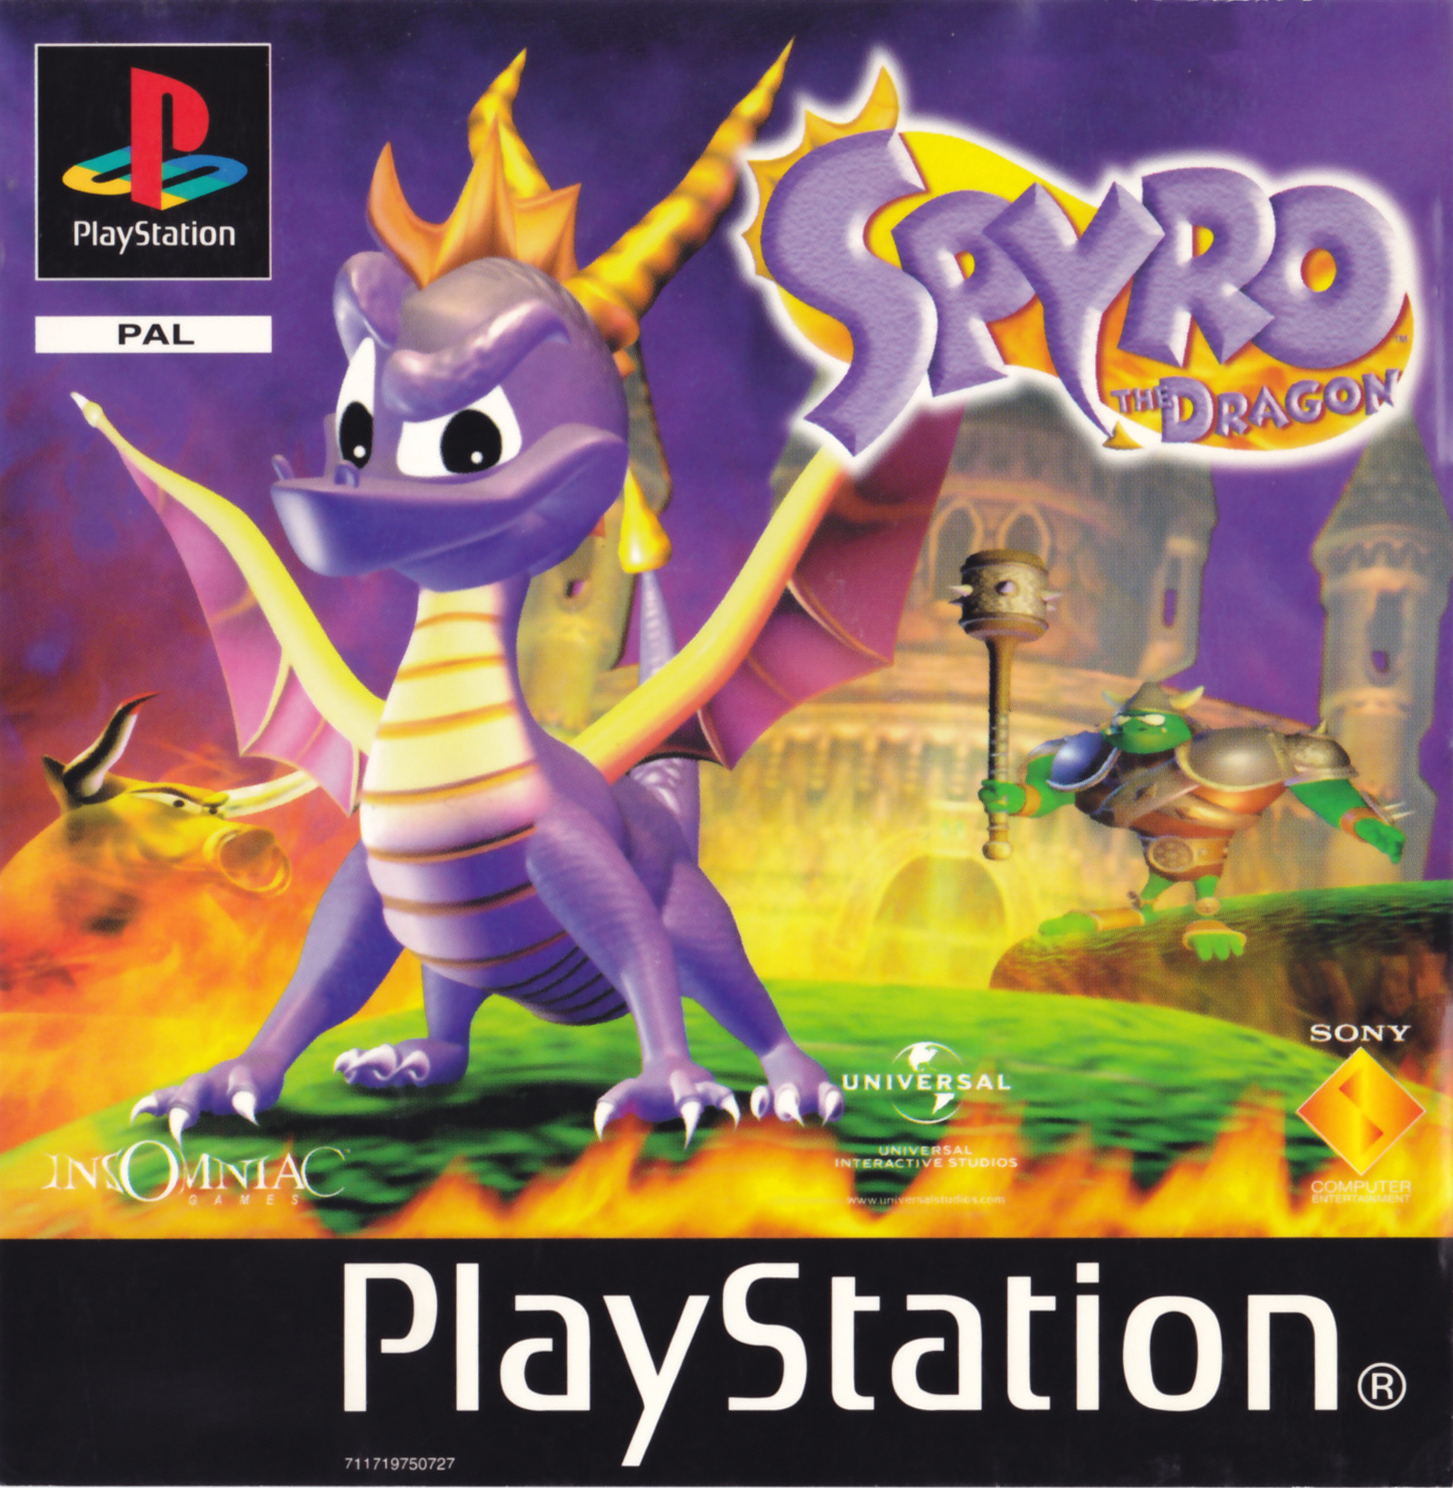 Spyro The Dragon [SCES-01438]